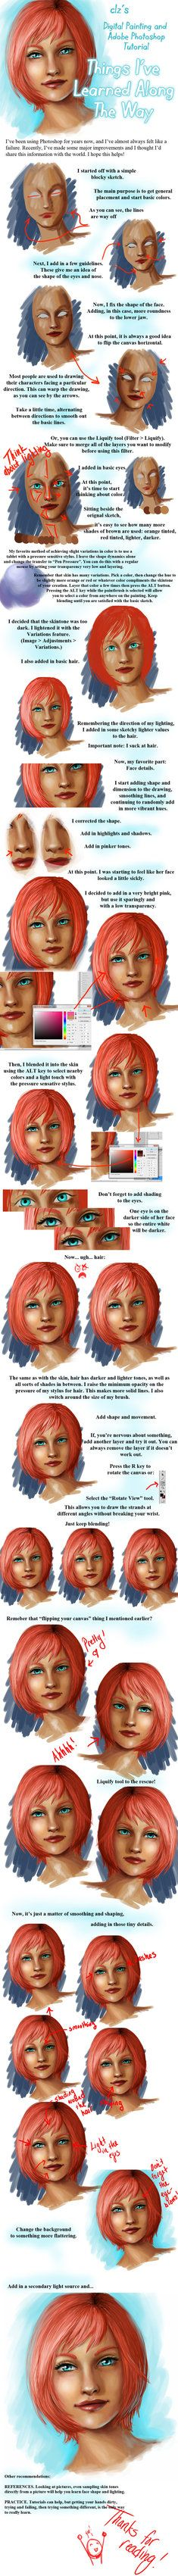 Character Design Digital Painting Tutorial : Images about character anatomy skin on pinterest